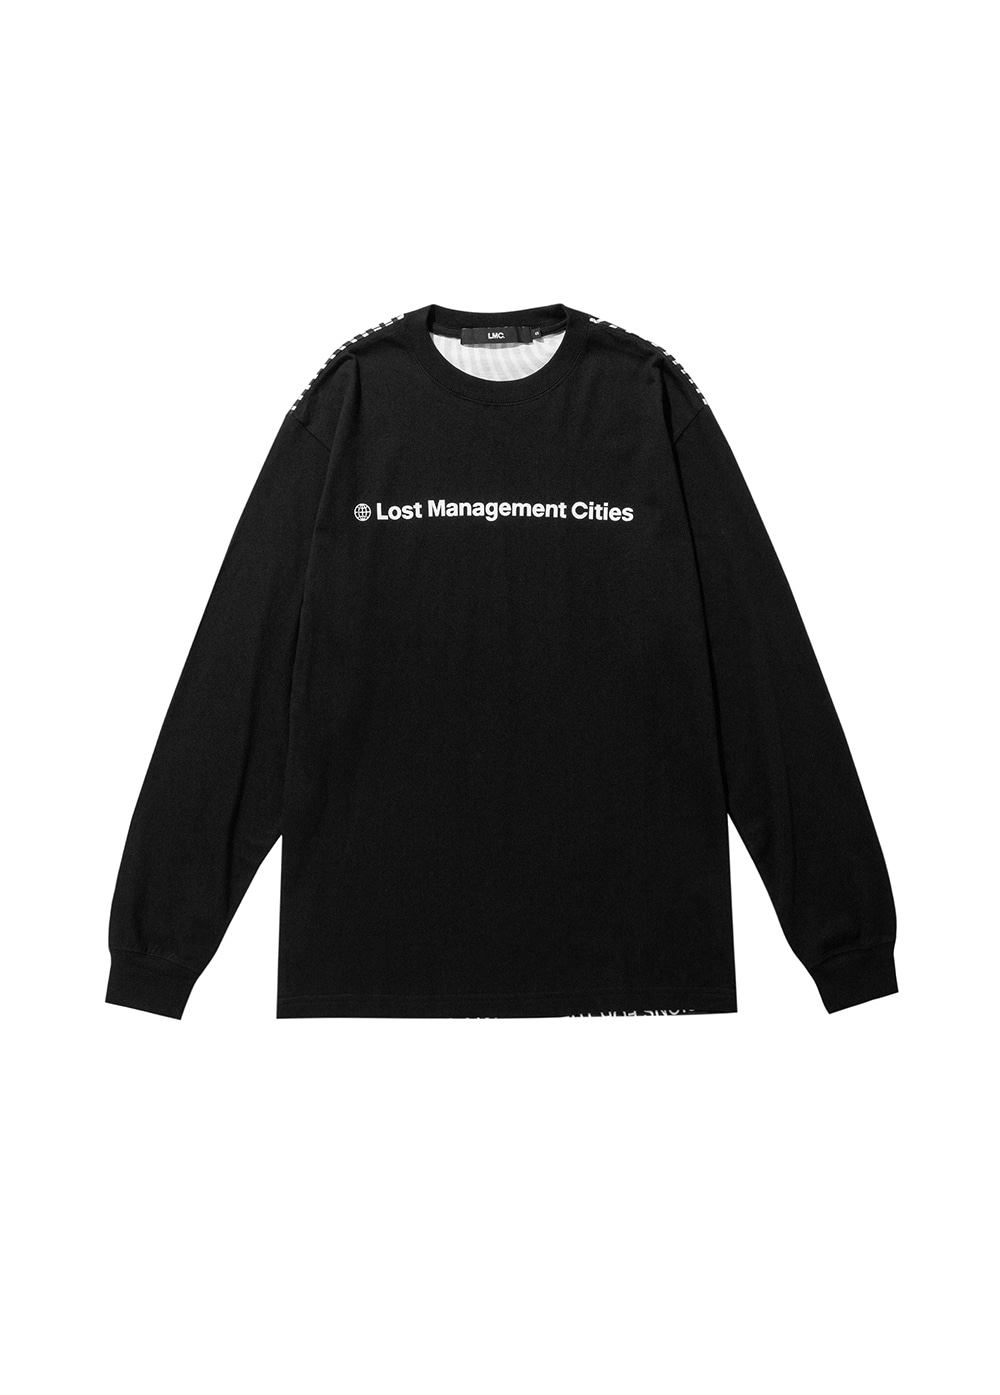 LMC OP ART LONG SLV TEE black